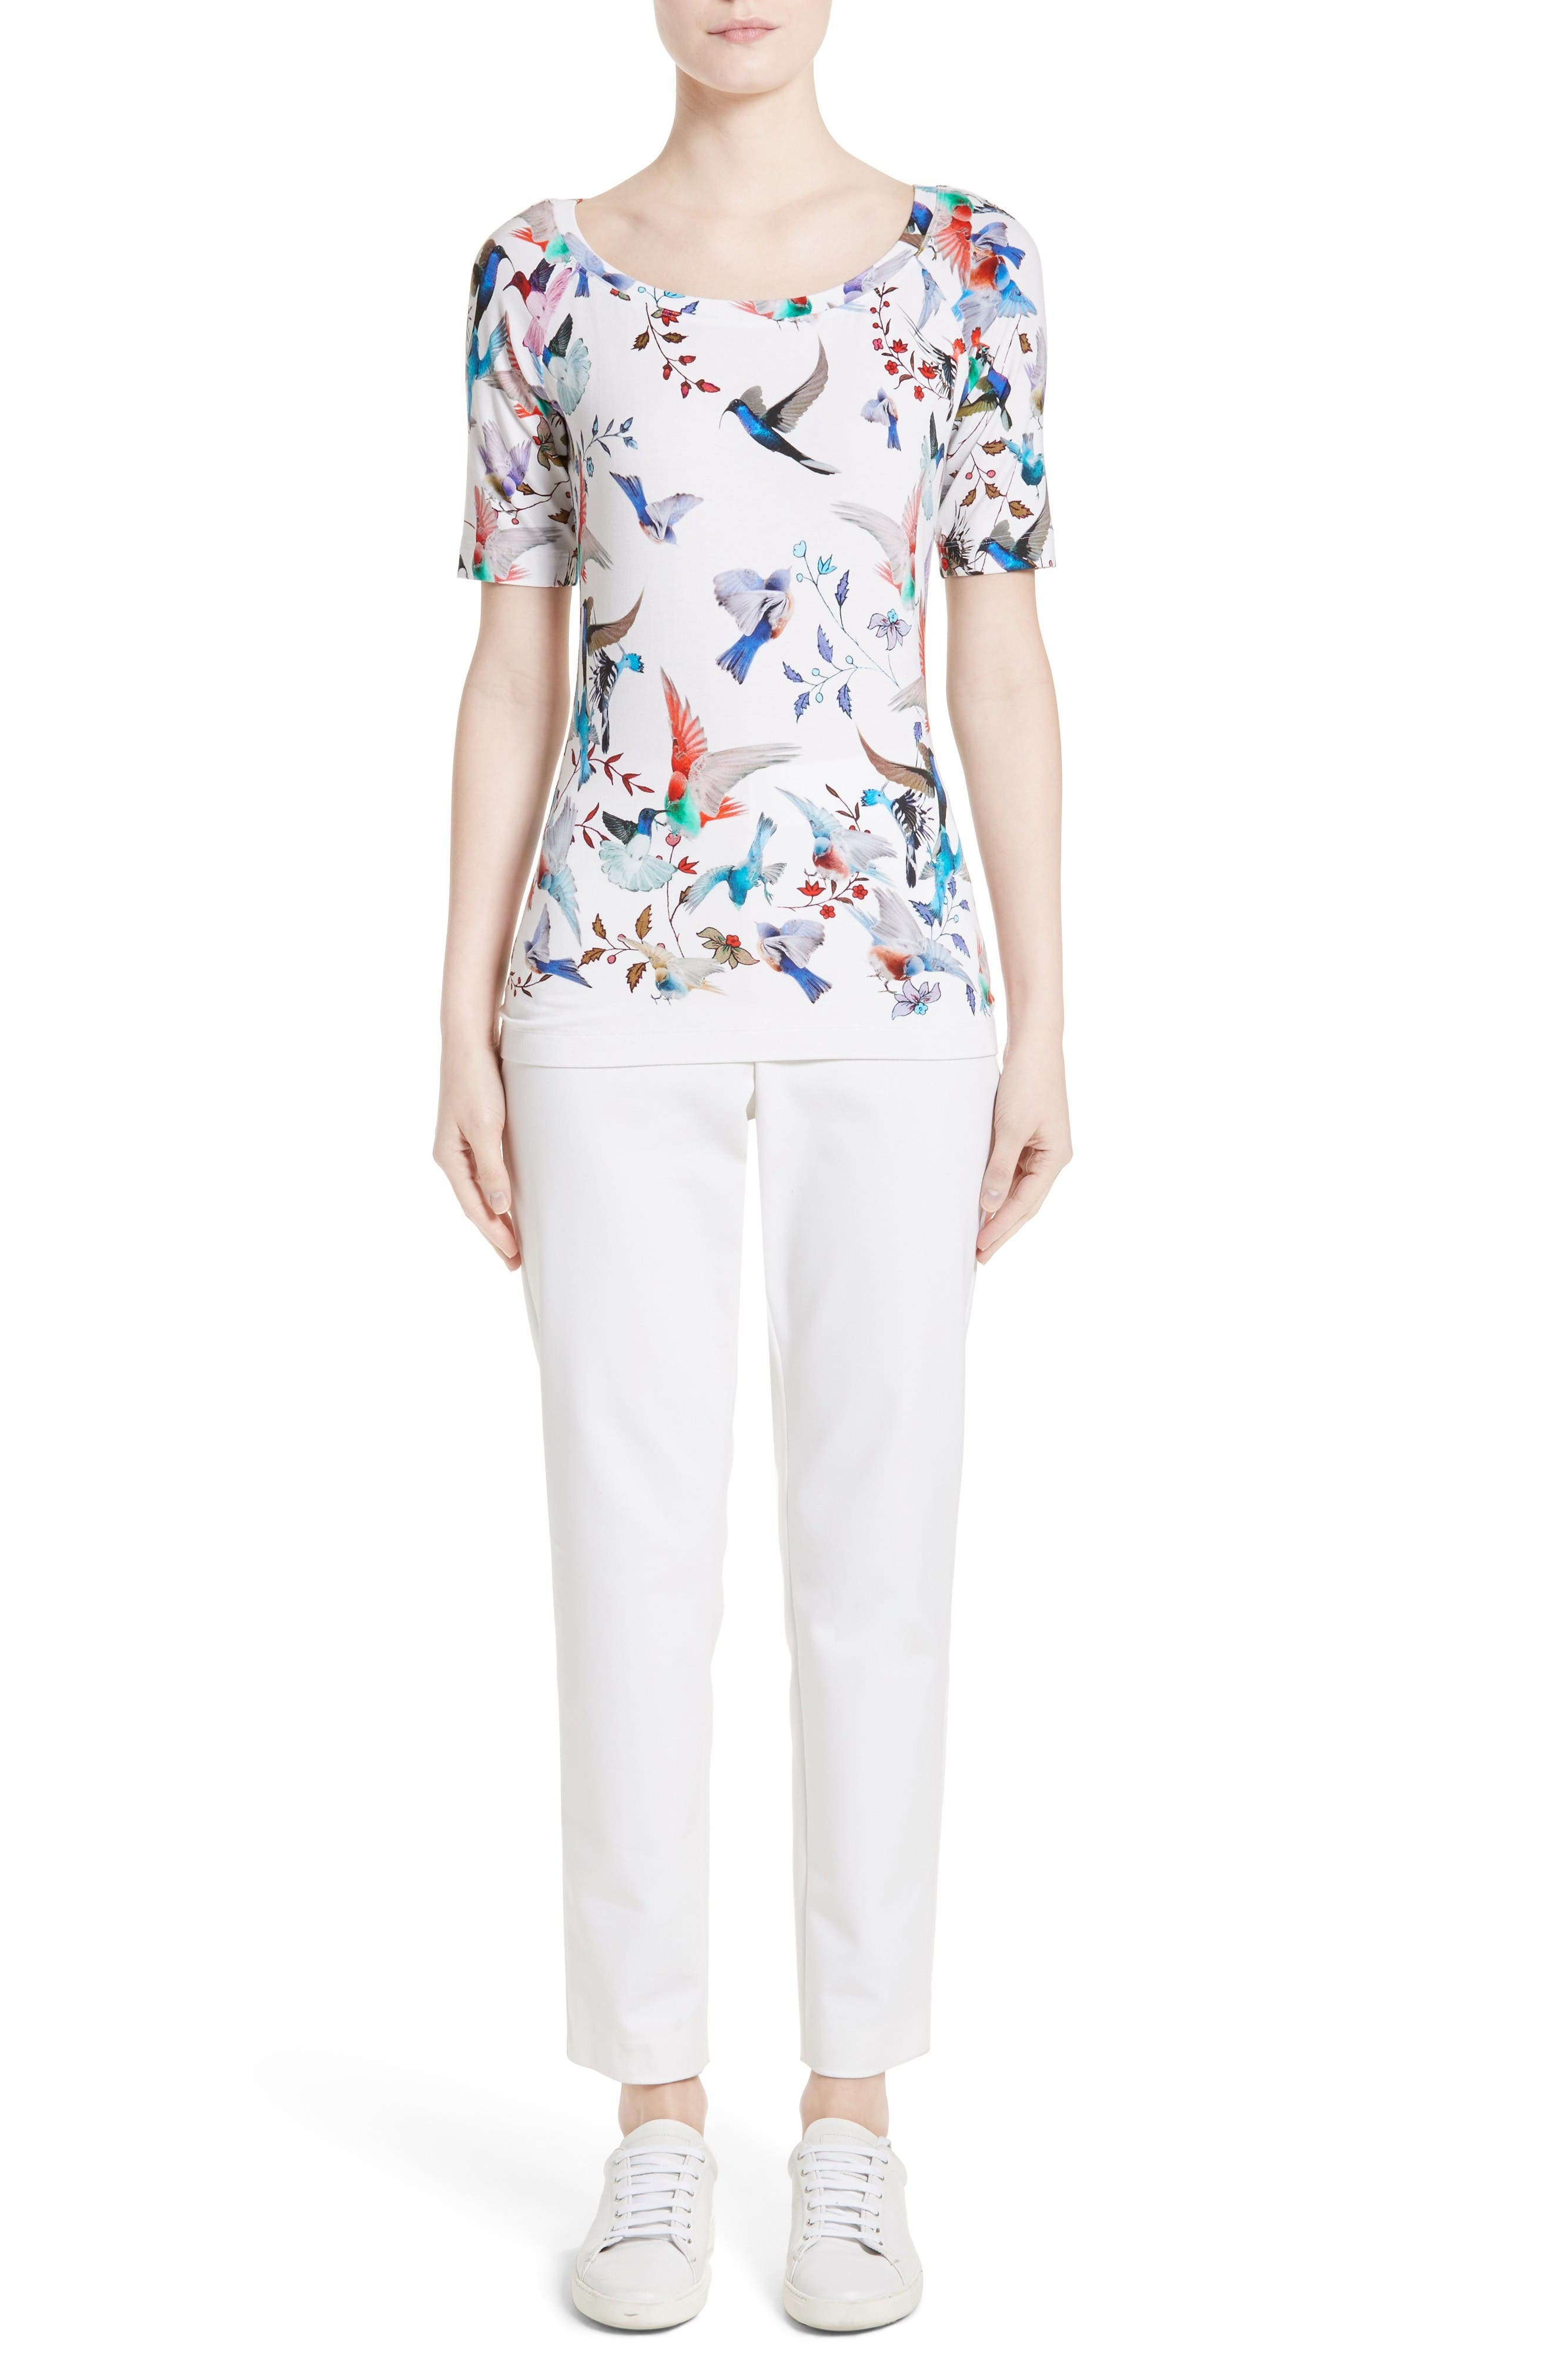 St. John Collection Tee & Pants Outfit with Accessories